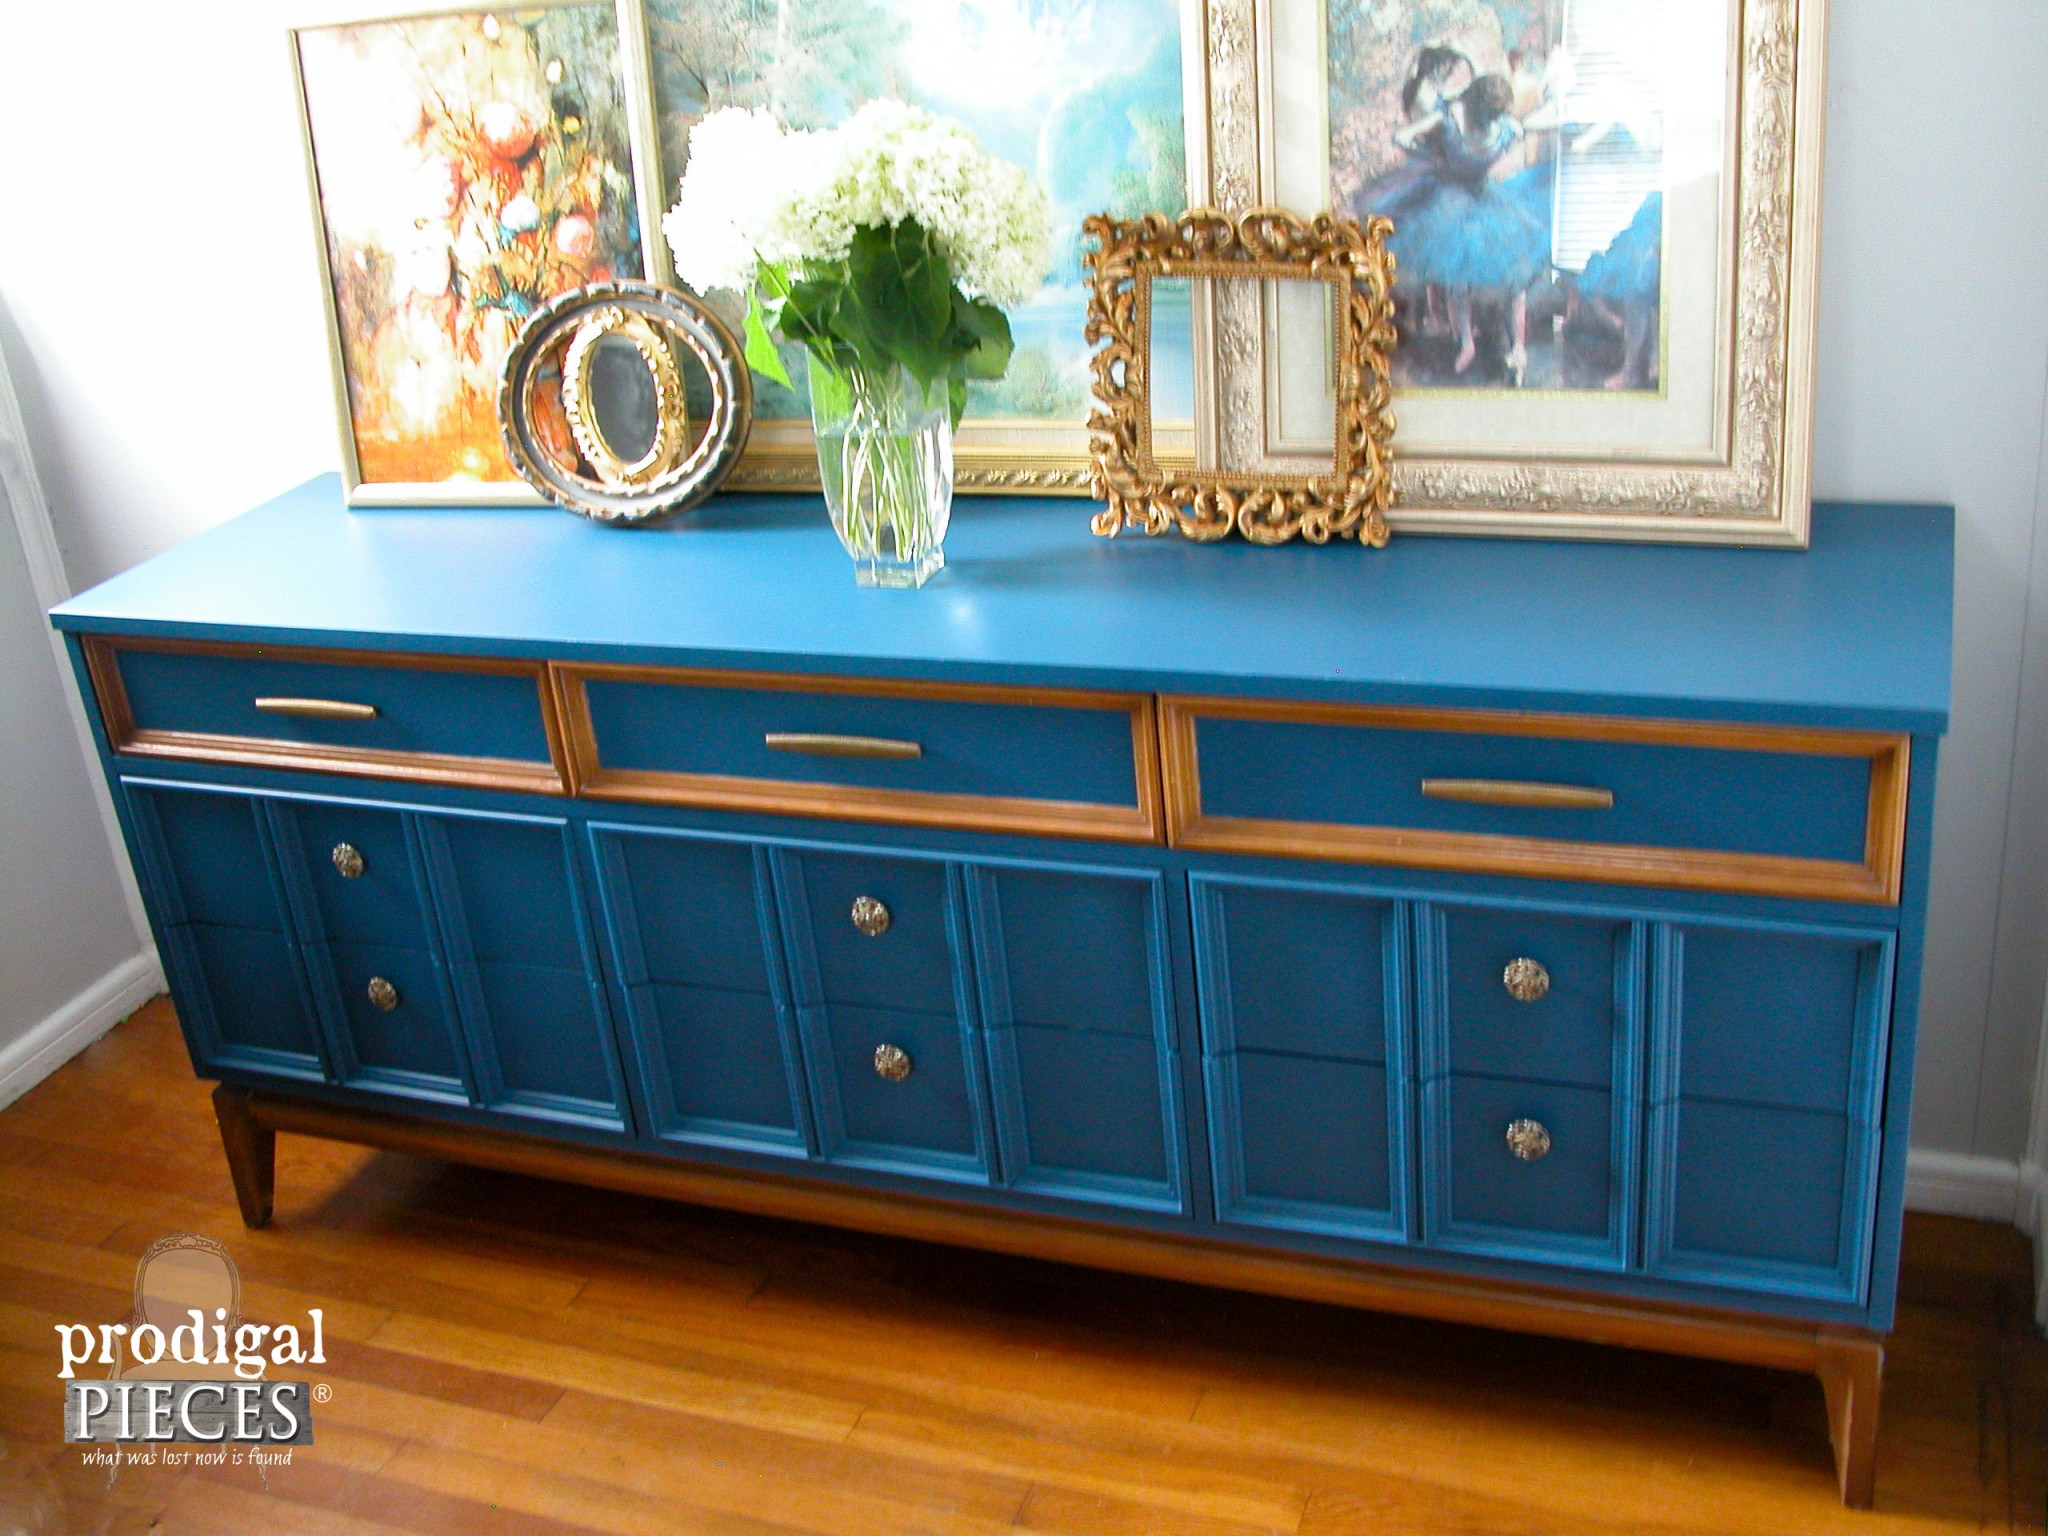 Arctic Blue Mid Century Modern Dixie Dresser with Factory Finish by Prodigal Pieces | www.prodigalpieces.com